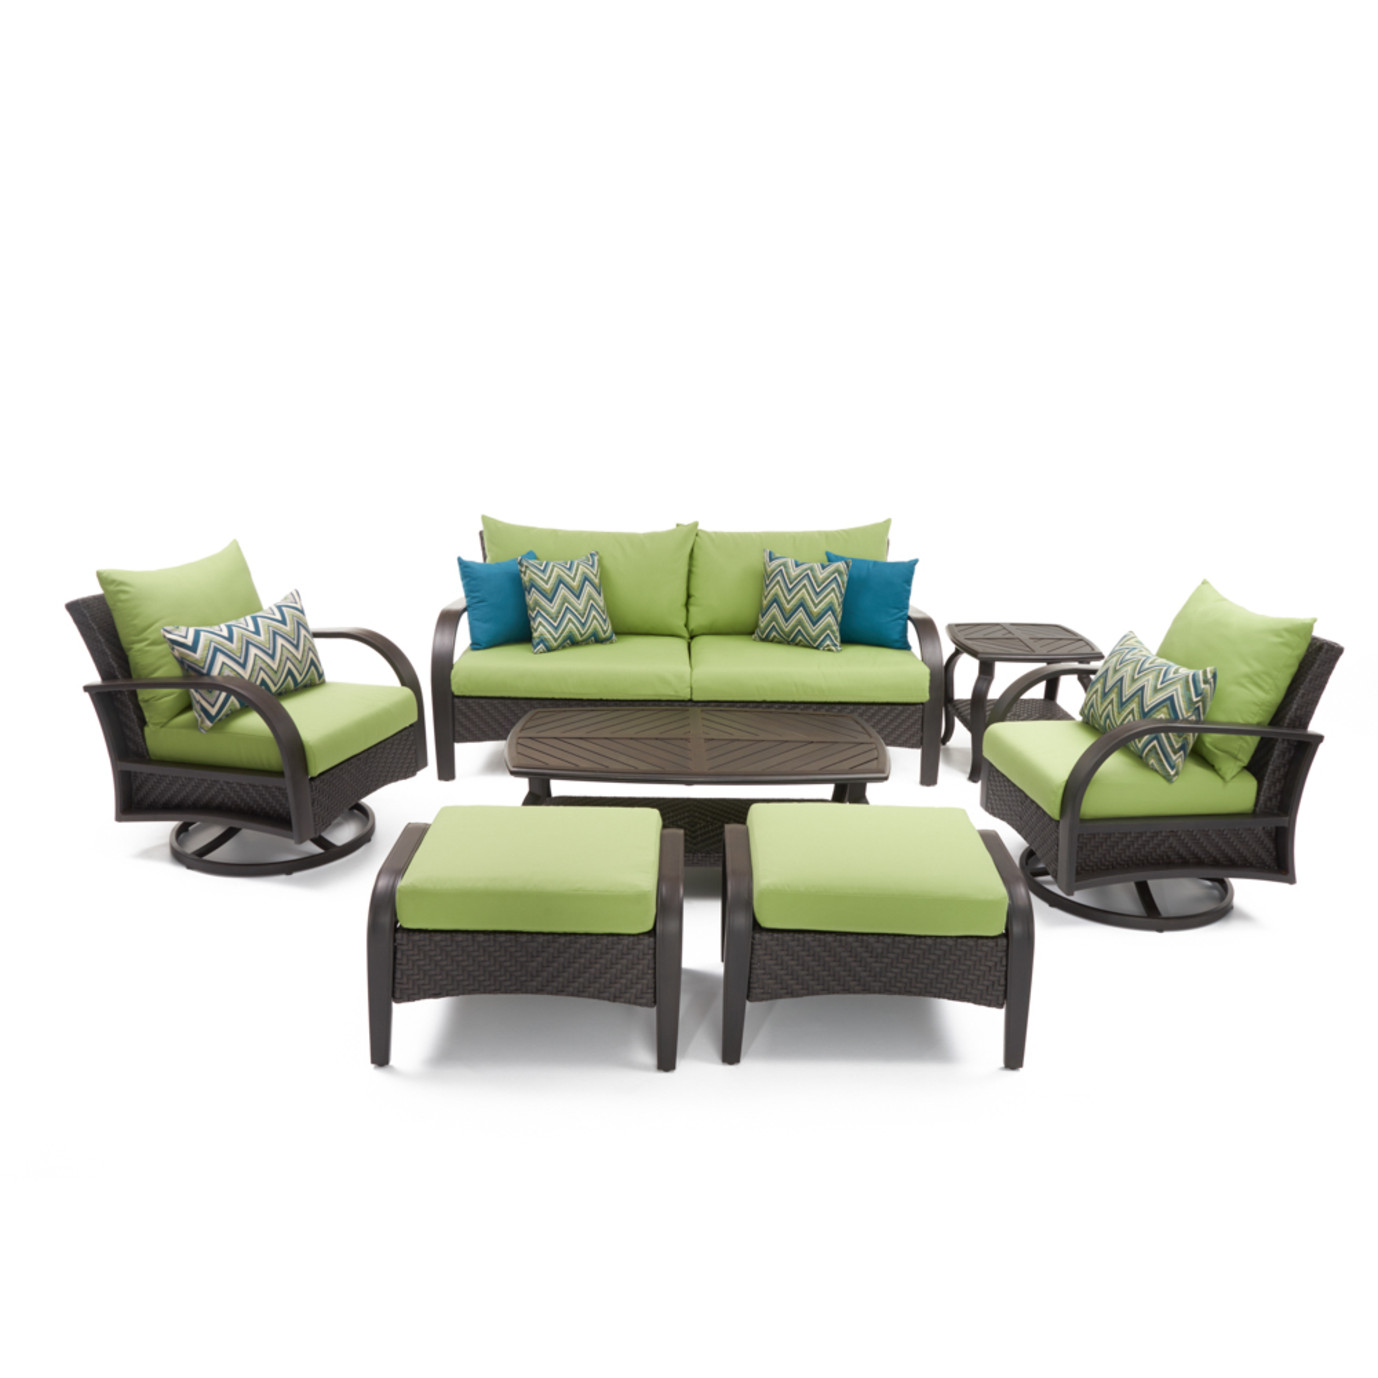 Barcelo™ 7 Piece Motion Club Deep Seating Set - Ginkgo Green